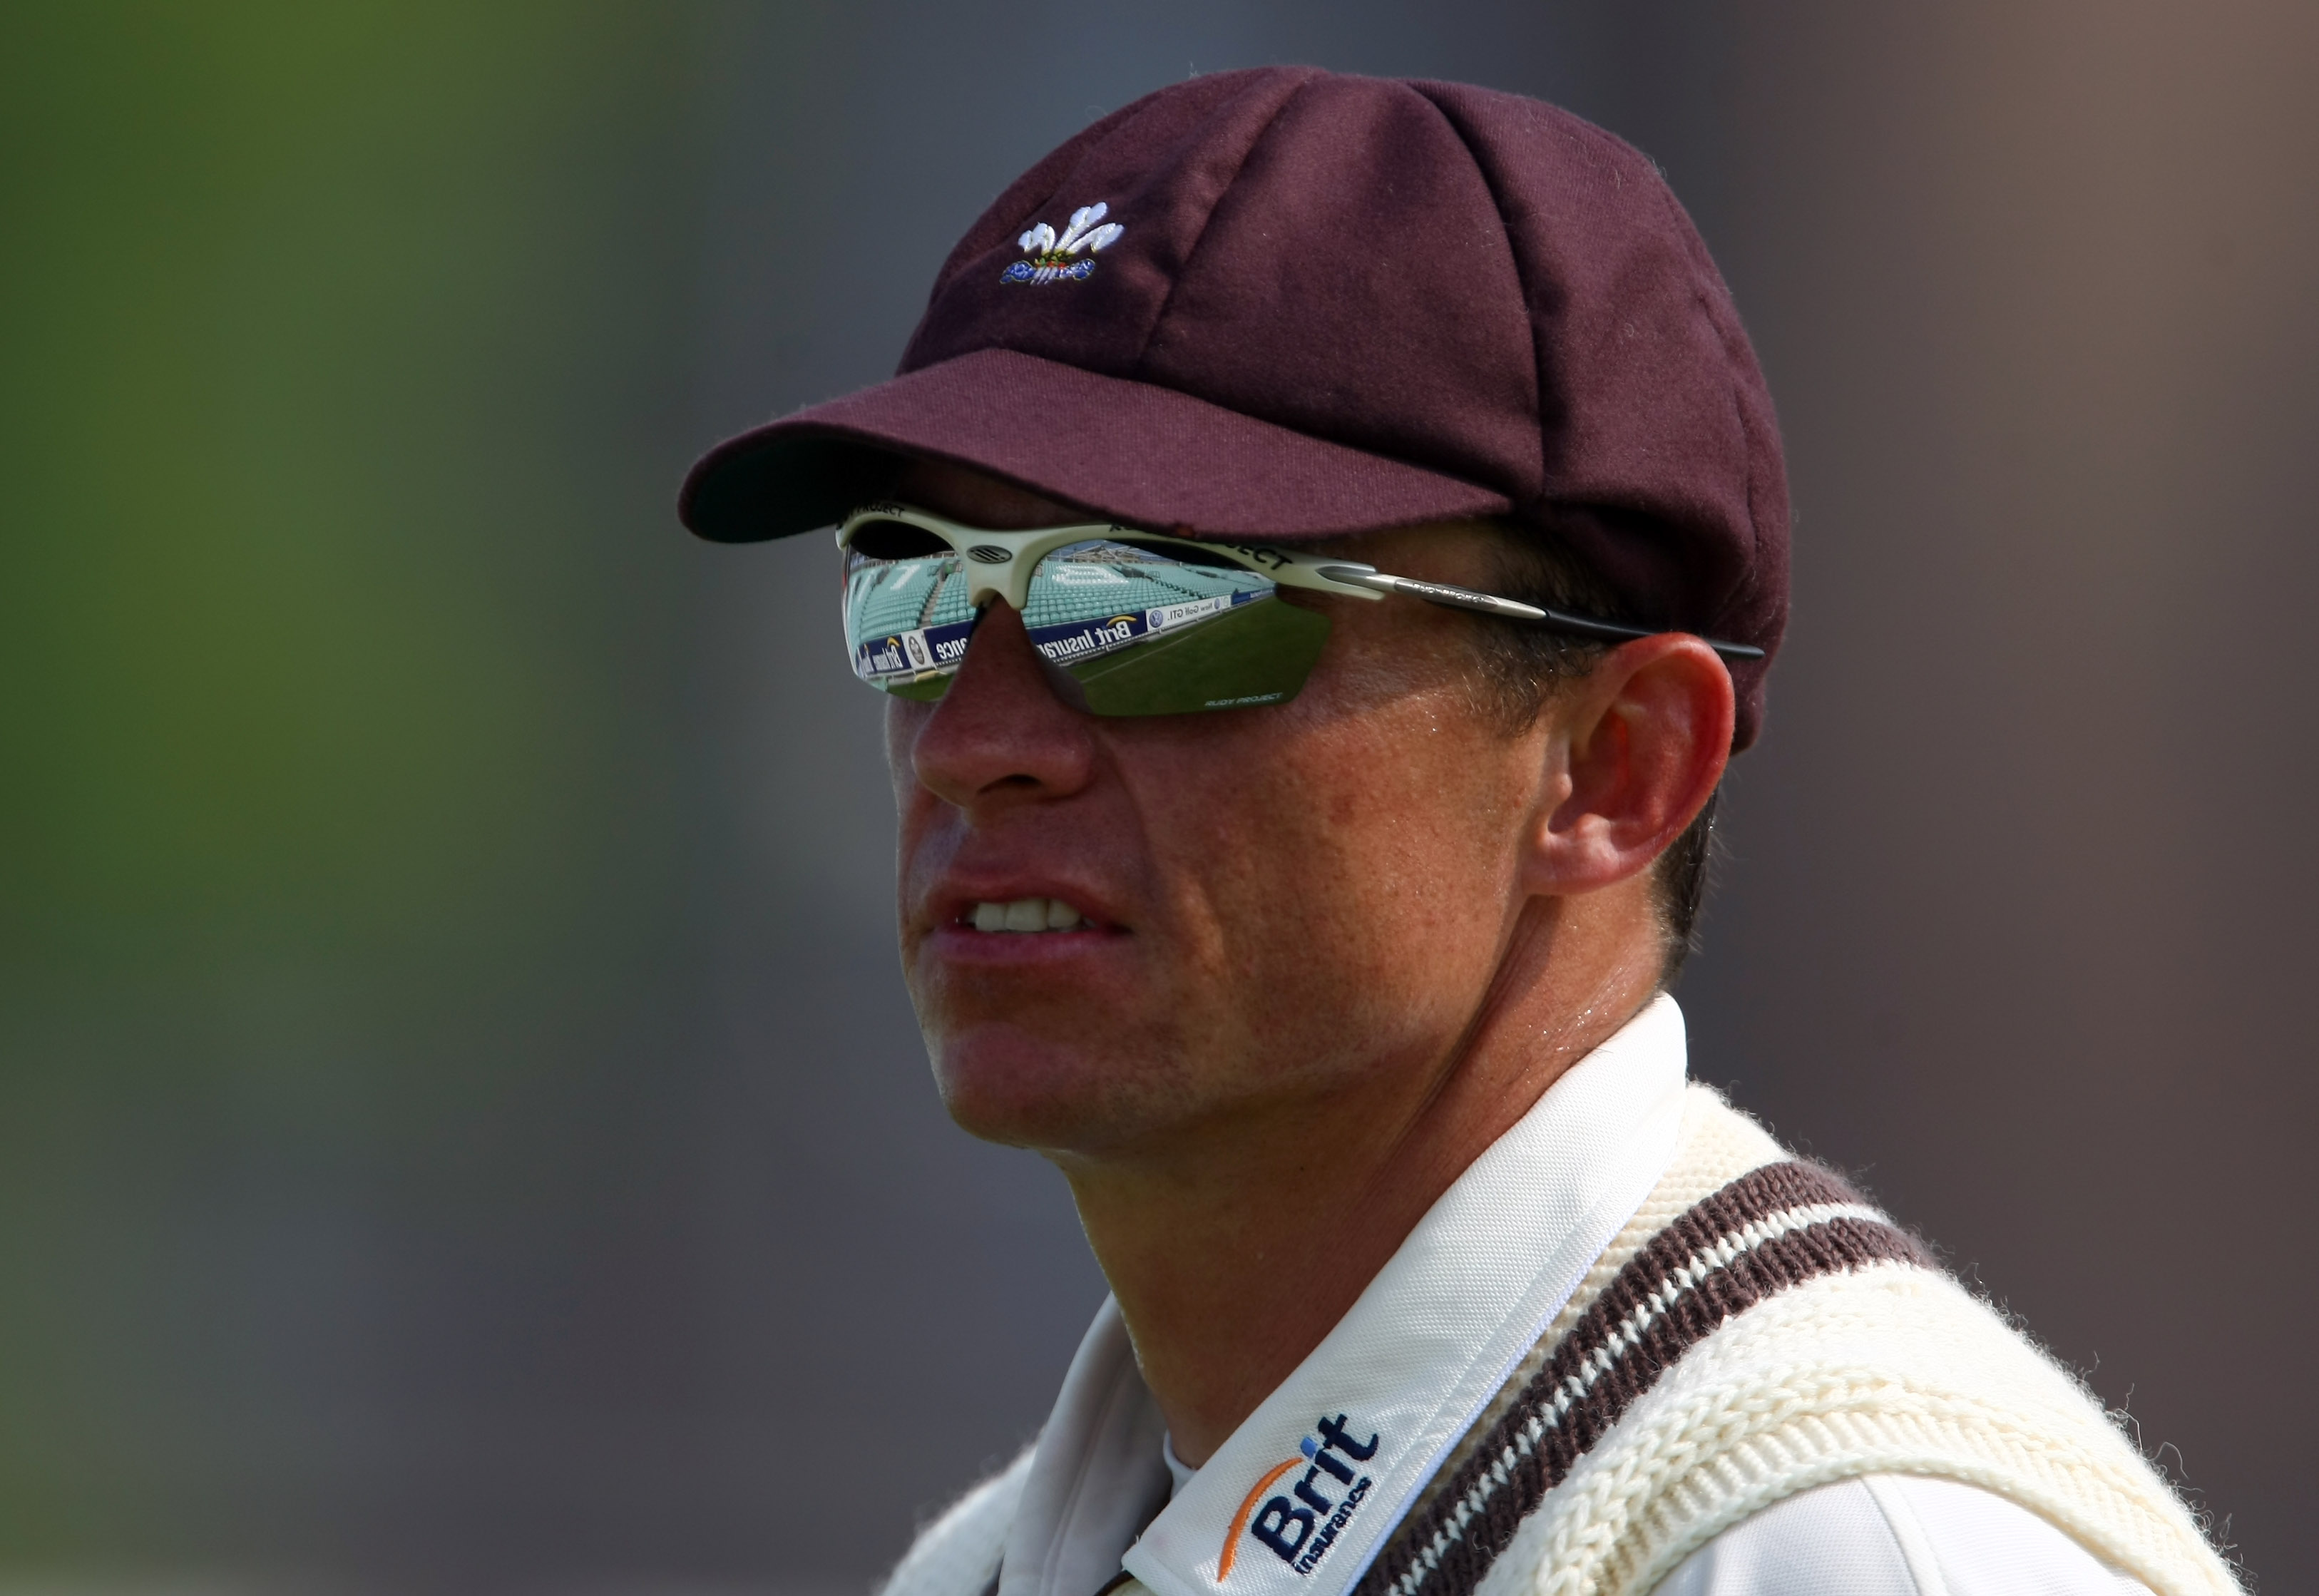 Former South Africa bowler Andre Nel appointed assistant and bowling coach at Essex